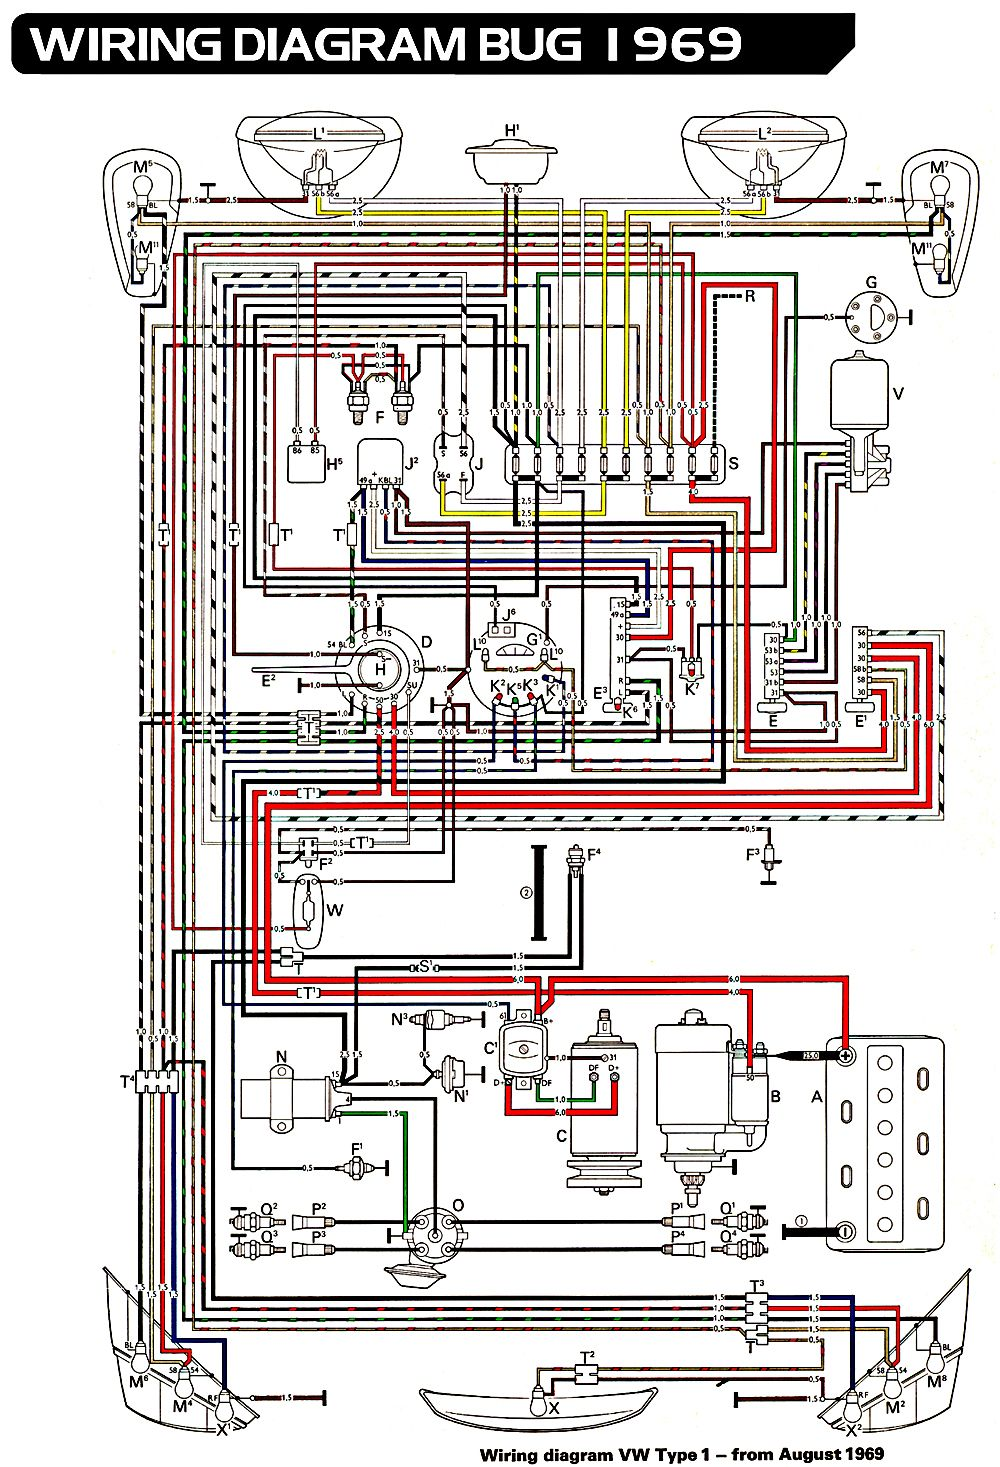 6d75c15875479254f26a32a8499d9044 volkswagen beetle wiring diagram 1966 vw beetle wiring 1969 beetle wiring diagram at sewacar.co